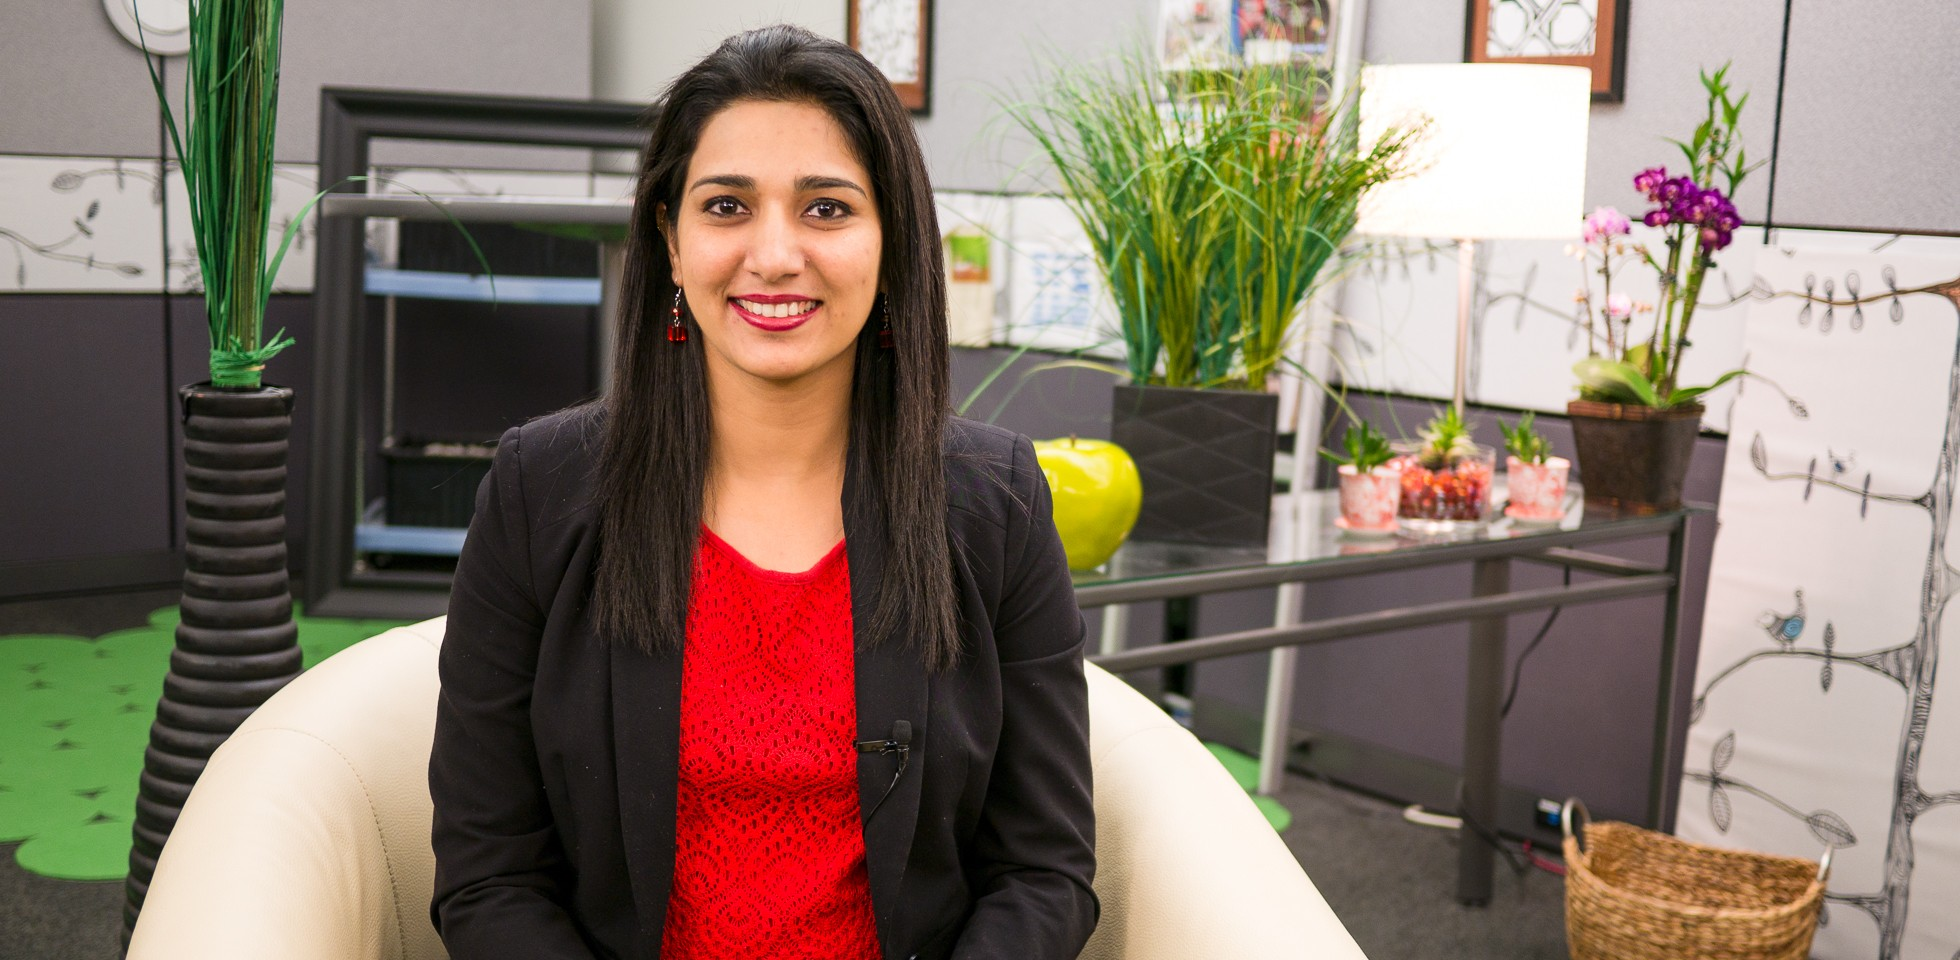 Sapna Kumar, Sales Operations Manager - Leyard and Planar Careers